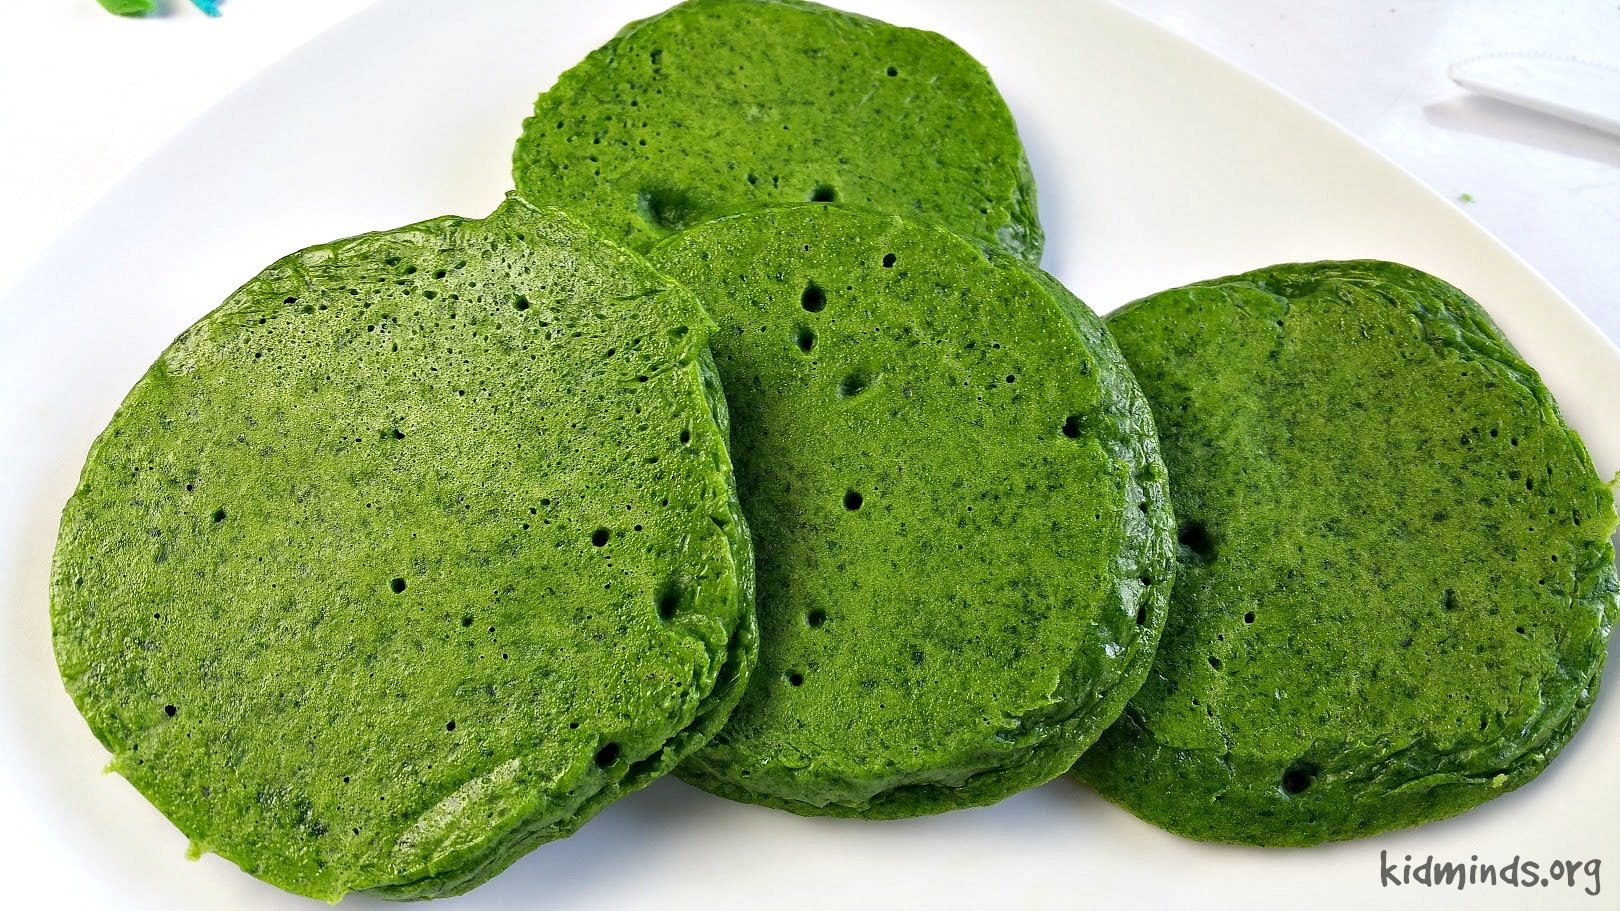 Green pancakes without artificial colorings.  The rich green color comes from fresh and nutritious spinach!